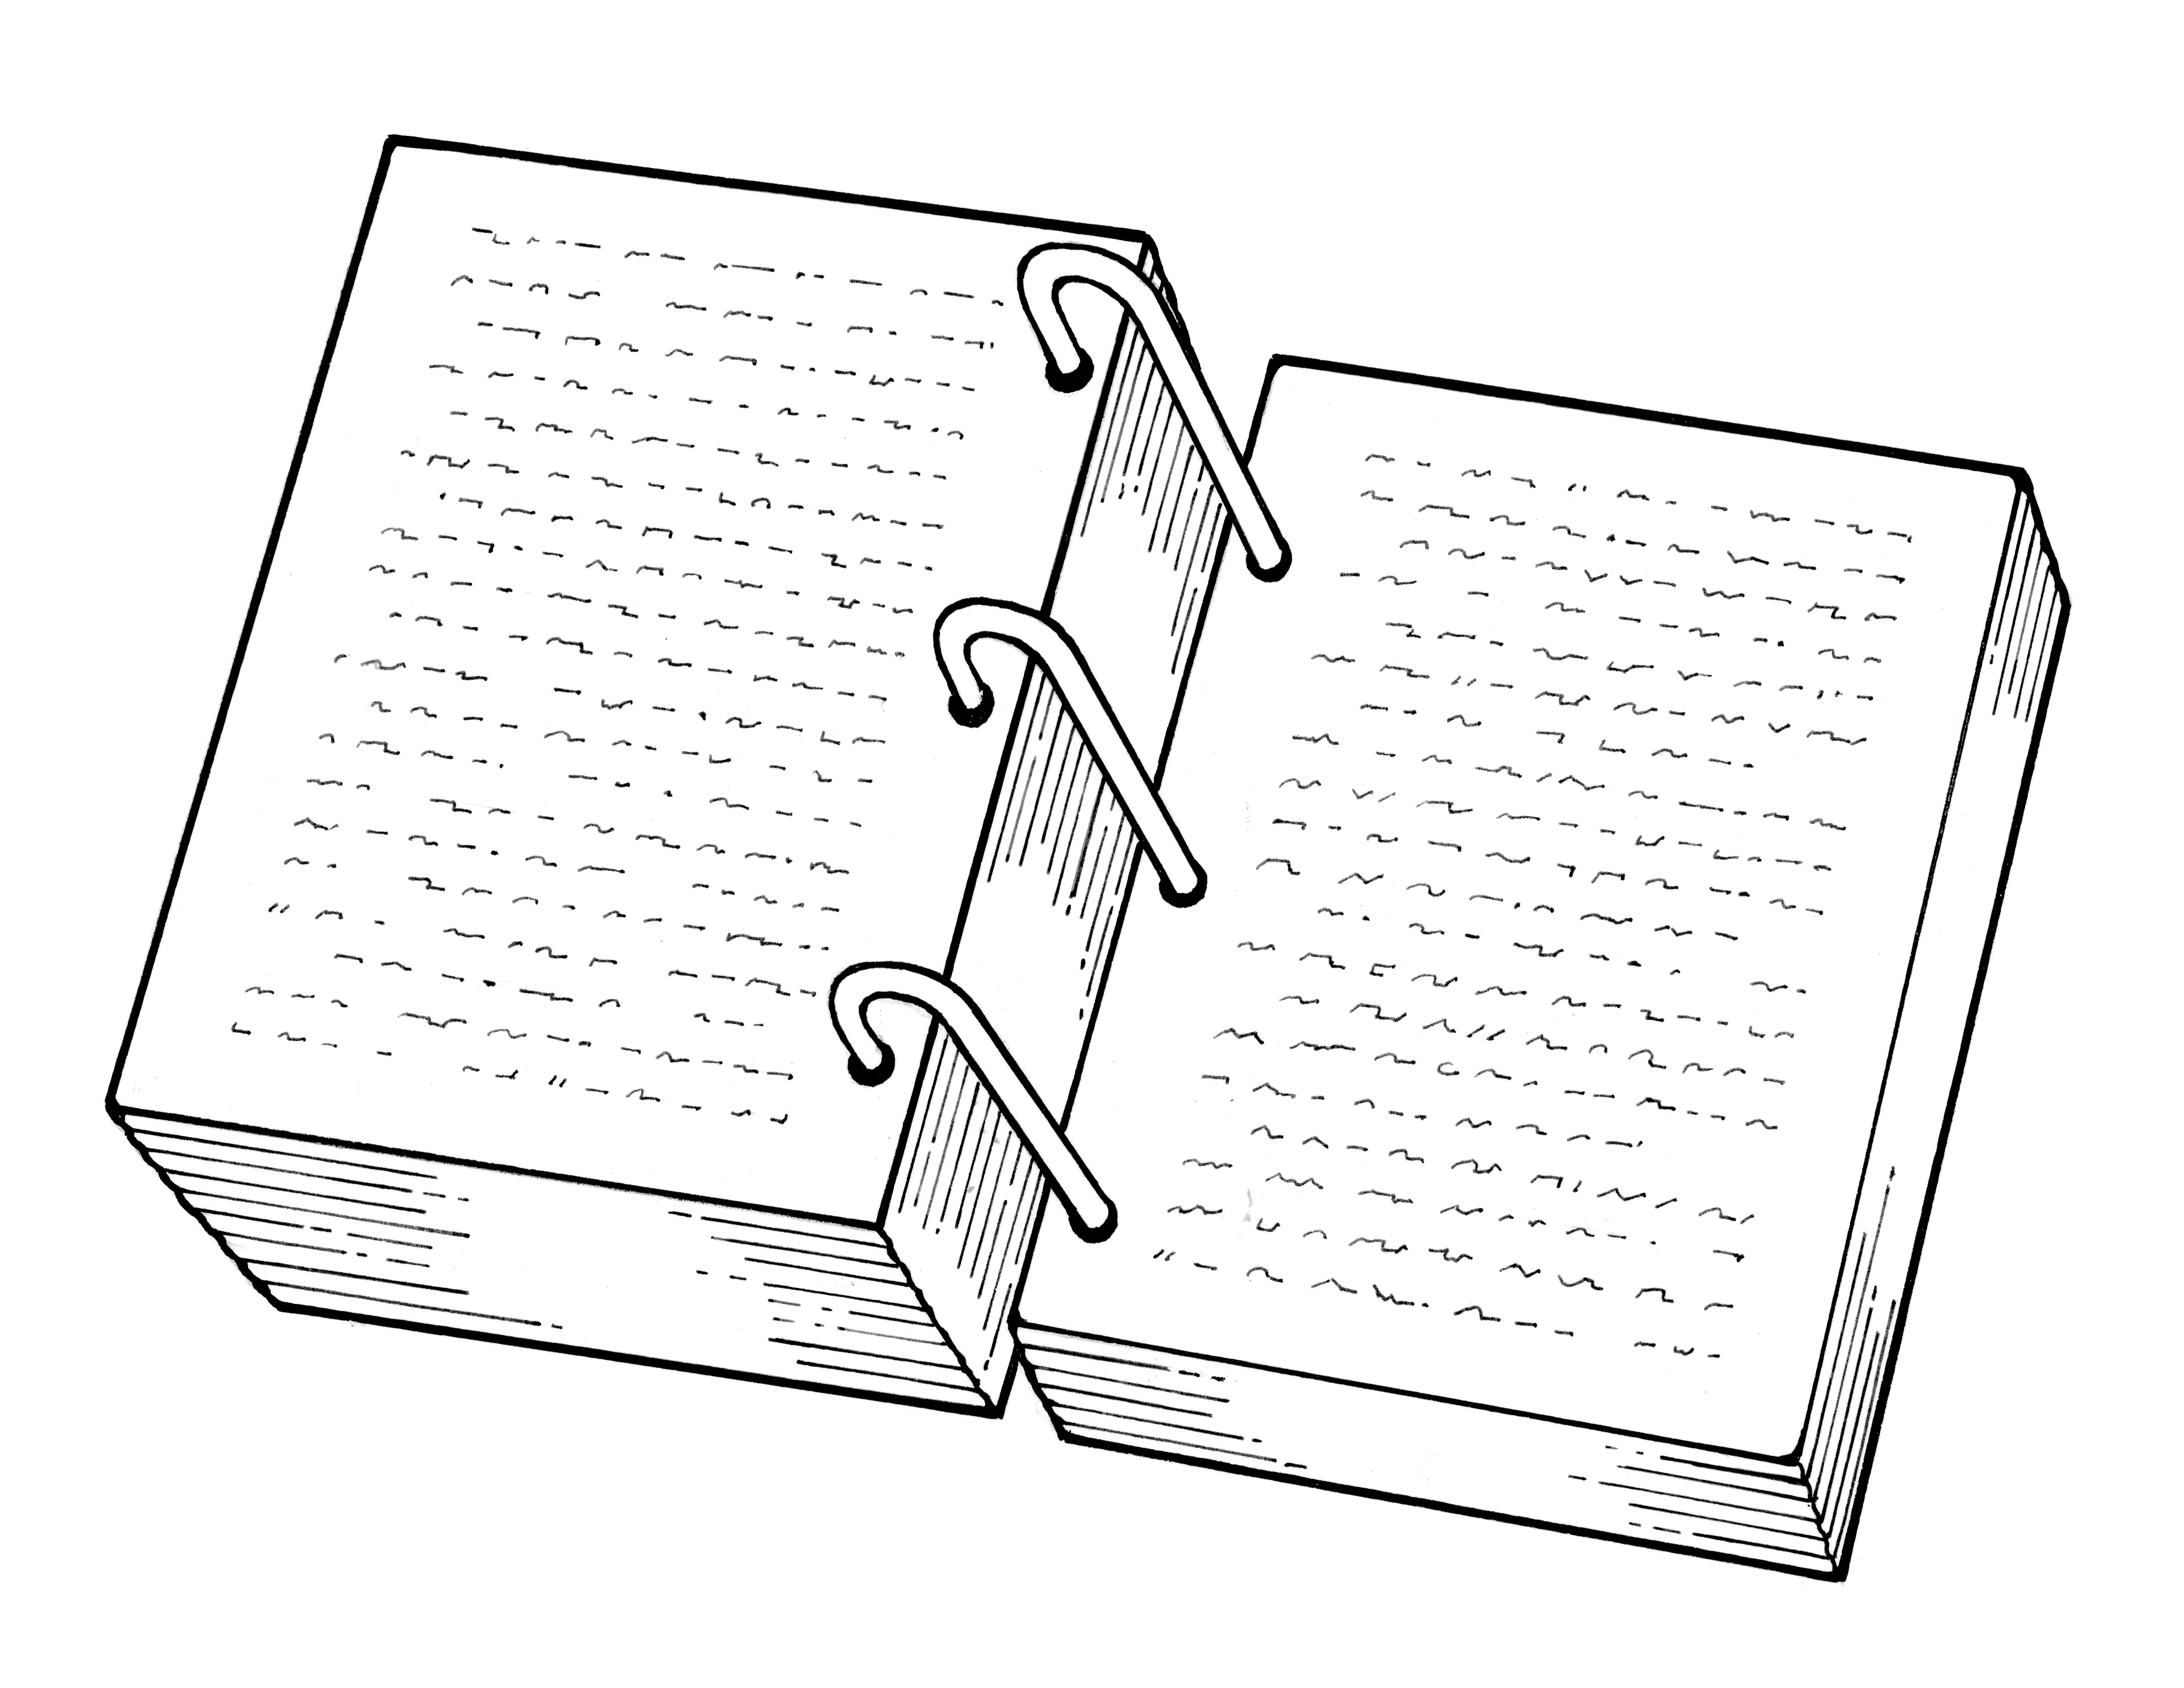 An illustration of the golden plates.